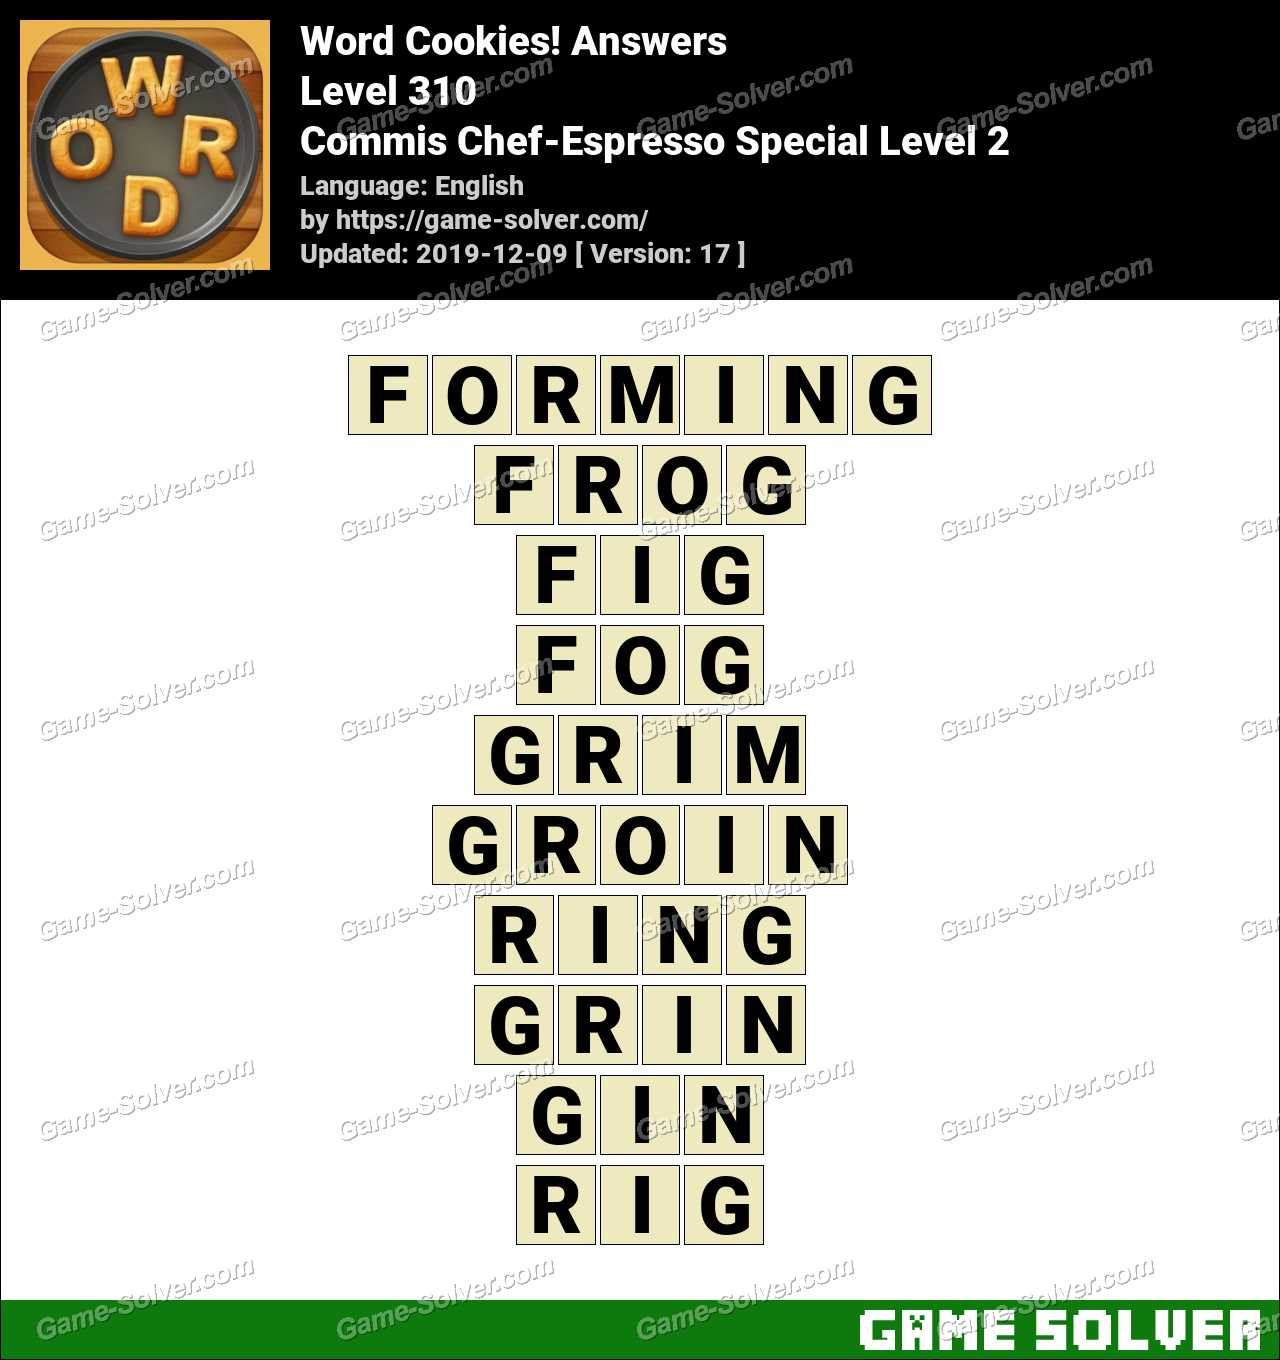 Word Cookies Commis Chef-Espresso Special Level 2 Answers